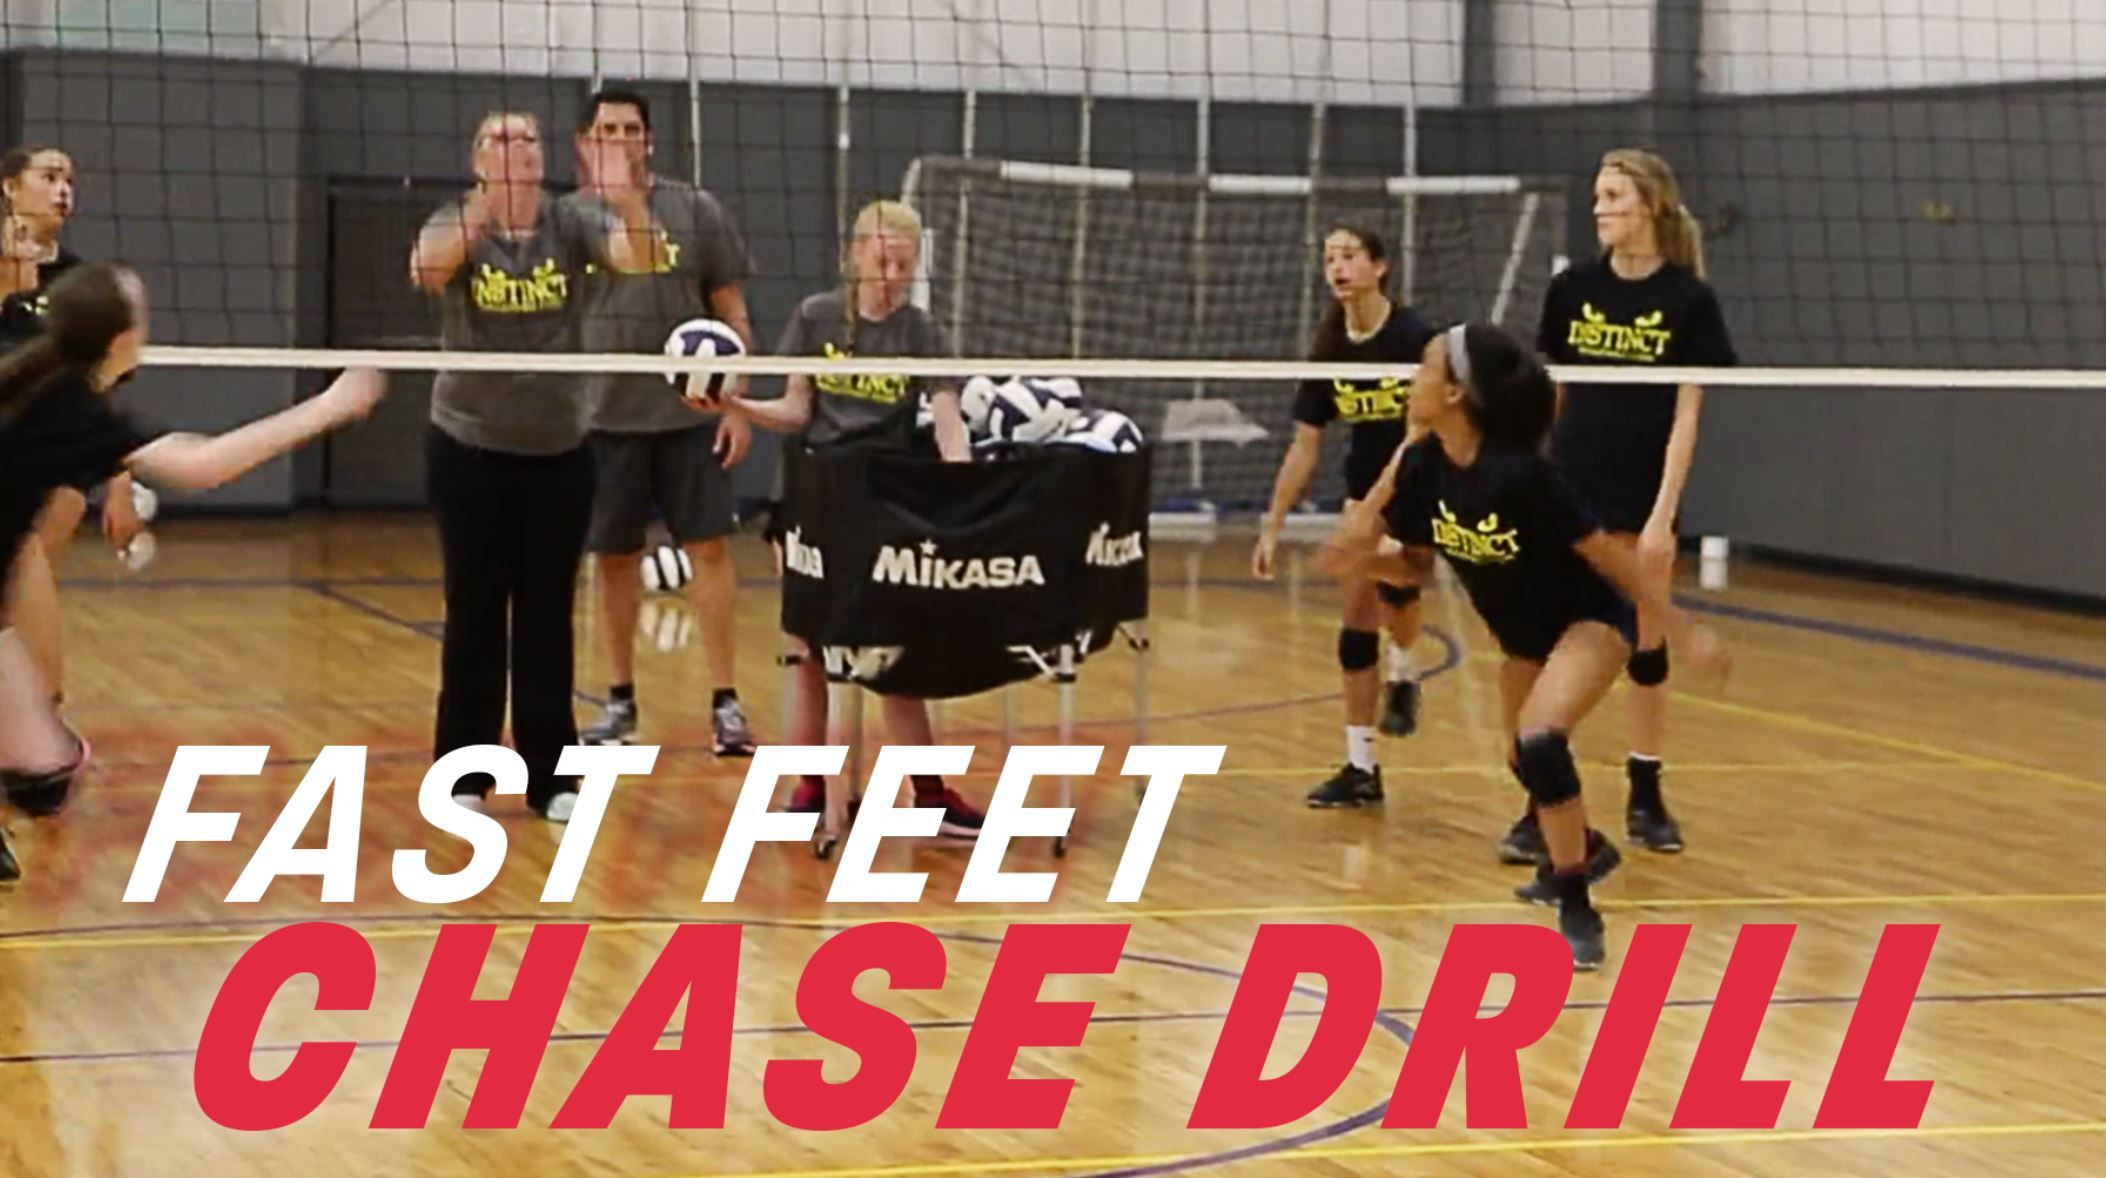 Encourage Fast Feet With Chase Drill The Art Of Coaching Volleyball Volleyball Training Coaching Volleyball Volleyball Skills